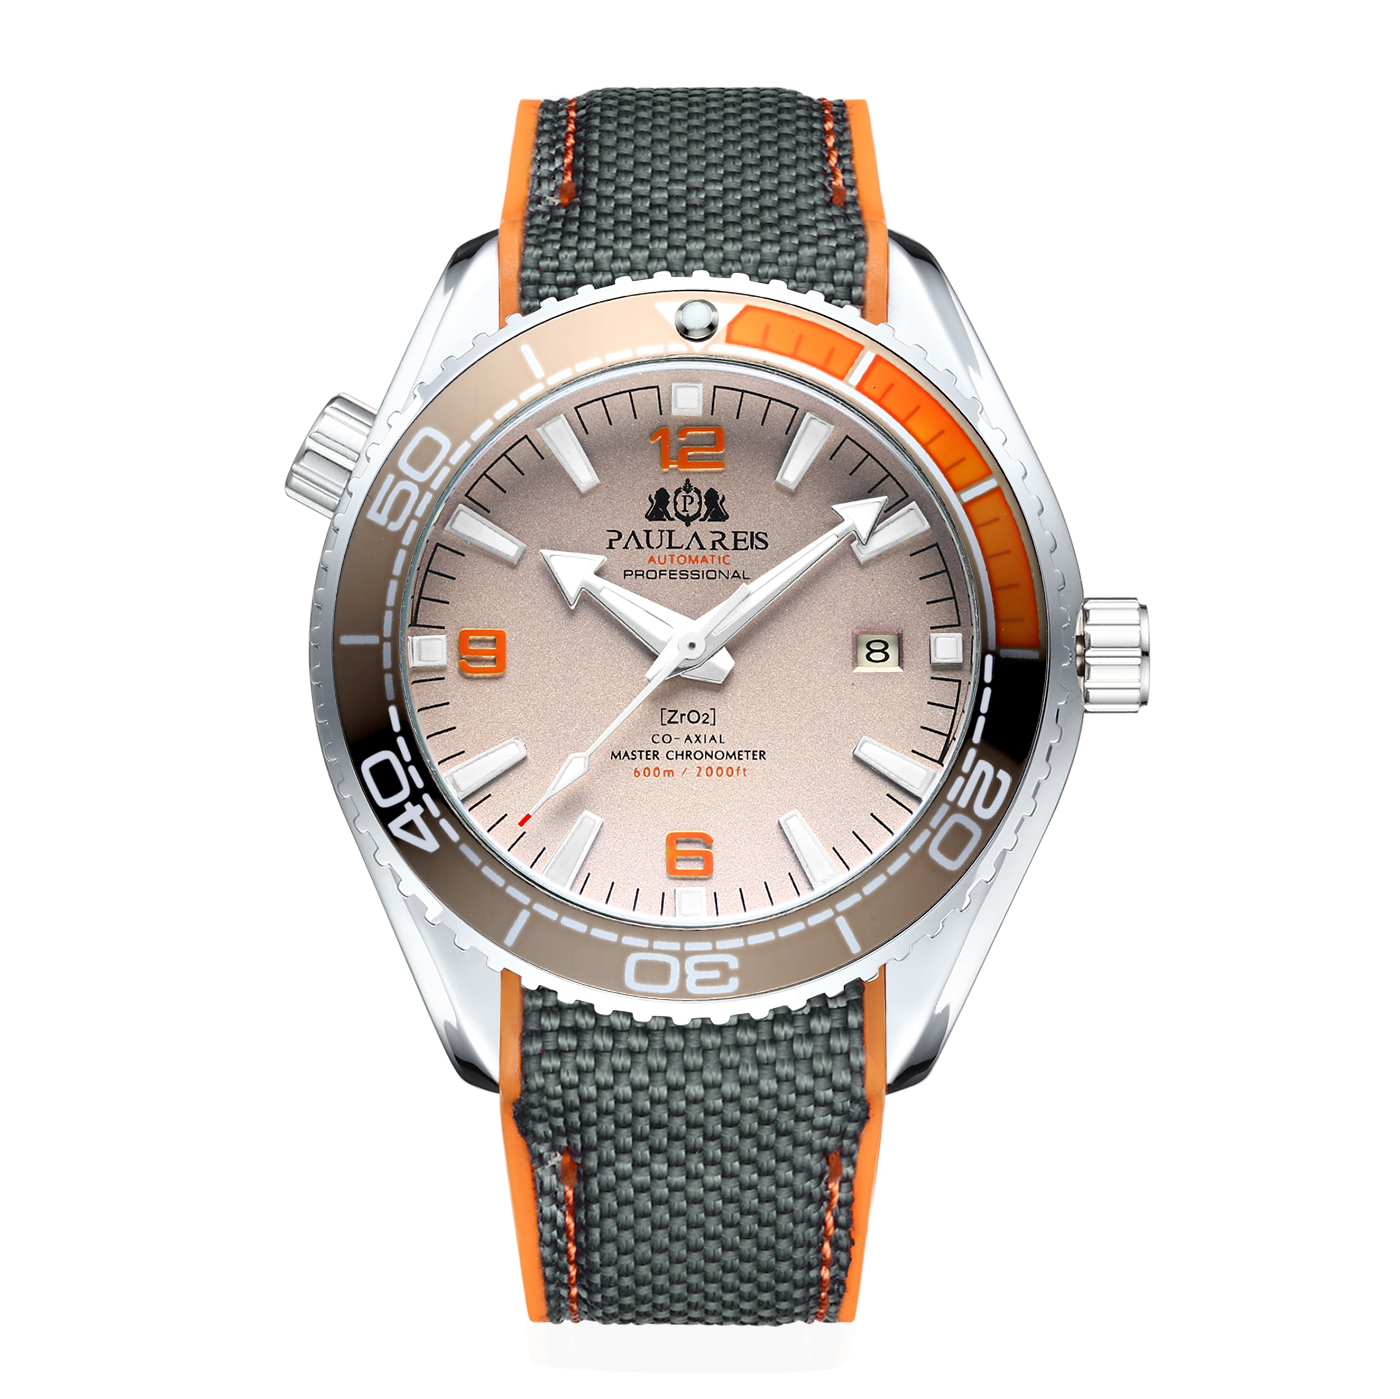 Rubber-Strap Watch Rotatable Bezel Self-Wind-Mechanical-Canvas Classic James-Bond 007-Style